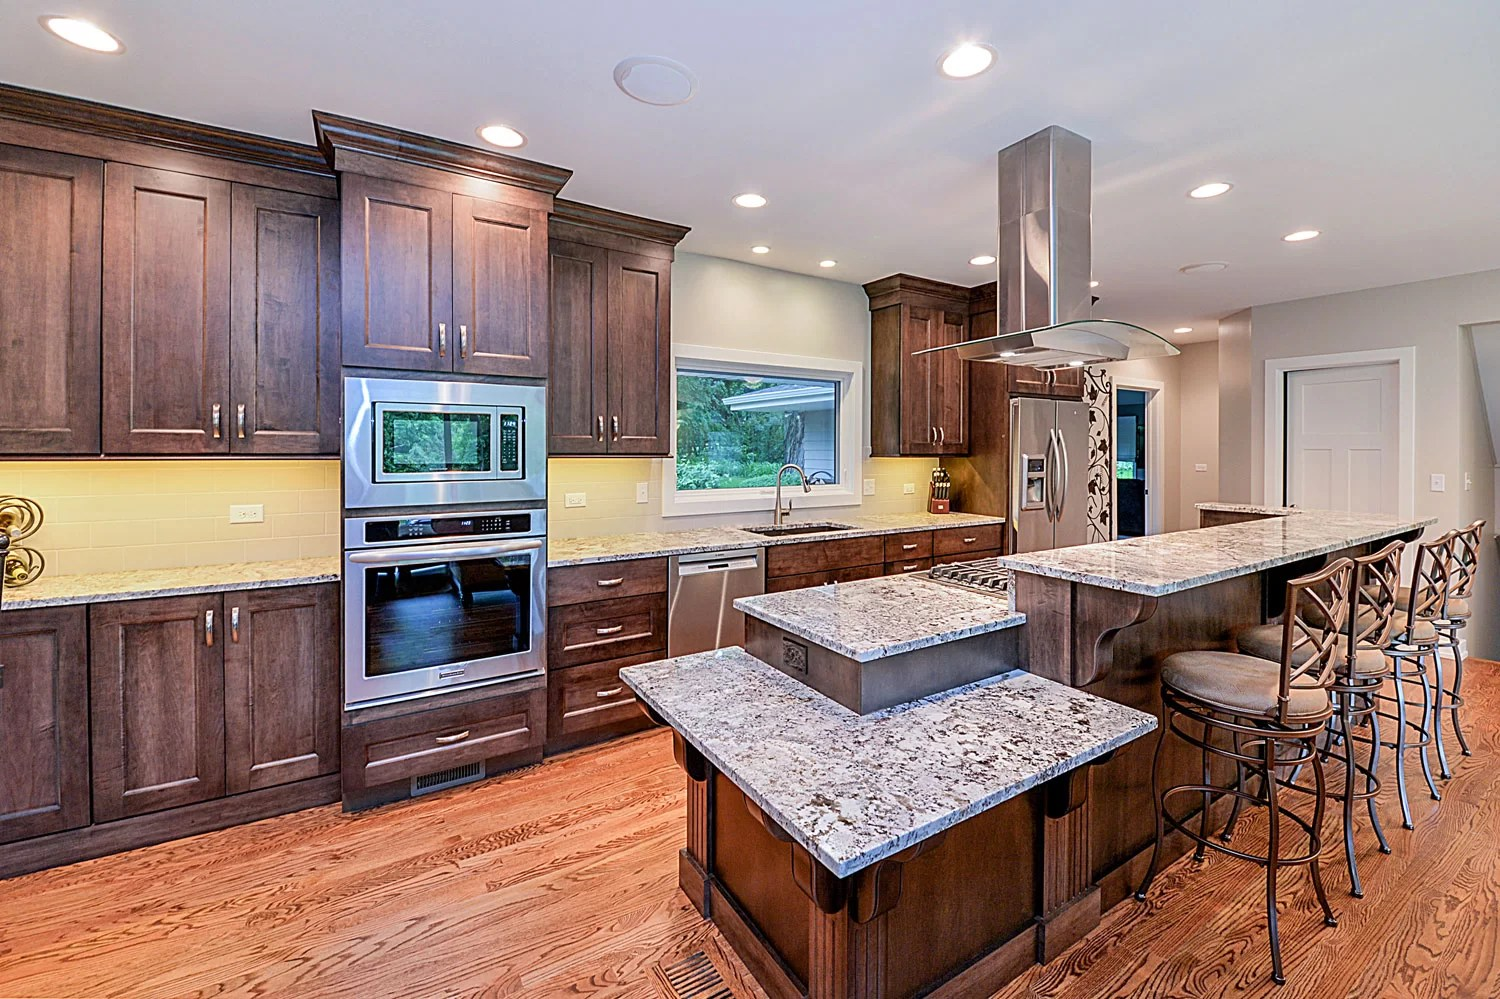 dan & ann's kitchen remodel pictures | home remodeling contractors